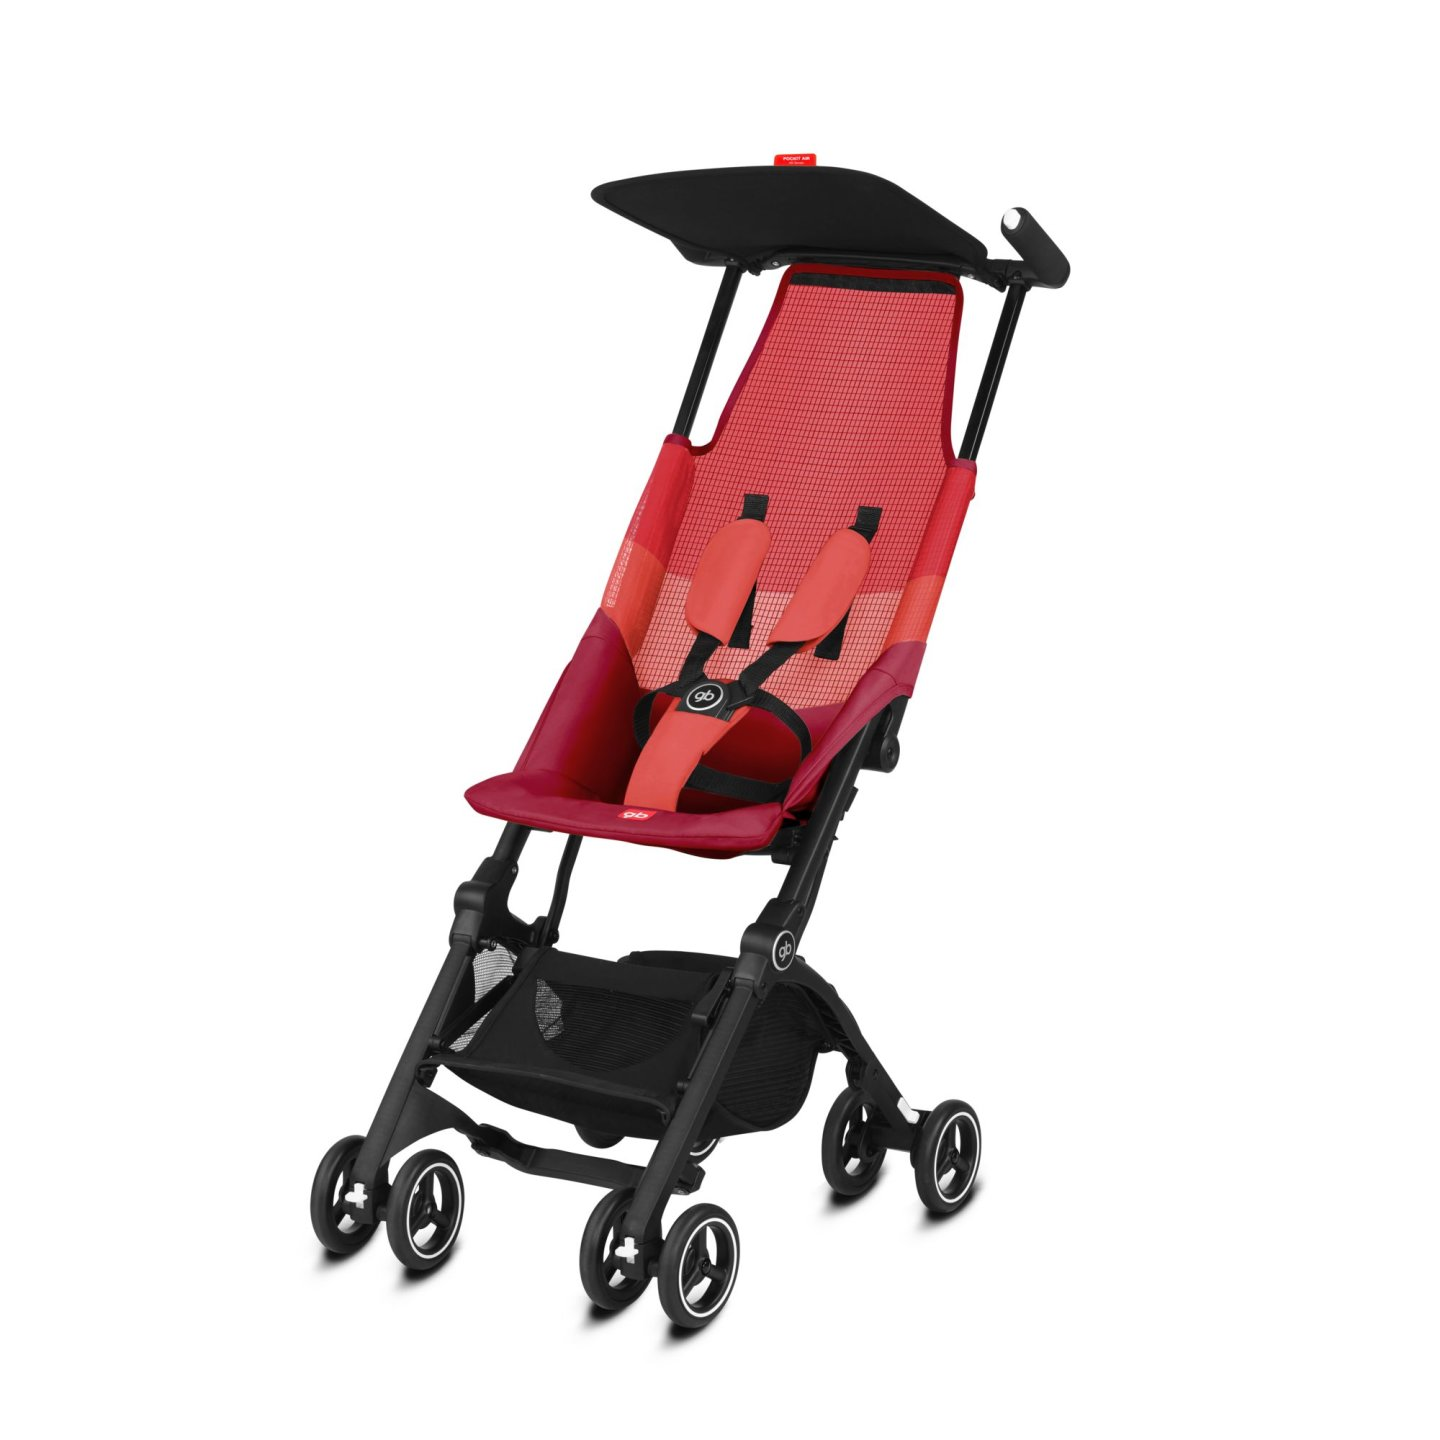 //images.gb-online.com/q_85,dn_72,h_1440/gbo/product-Pockit-Air-All-Terrain-Rose-Red-Sun-Shade-8624-8617-8589_ec4db7